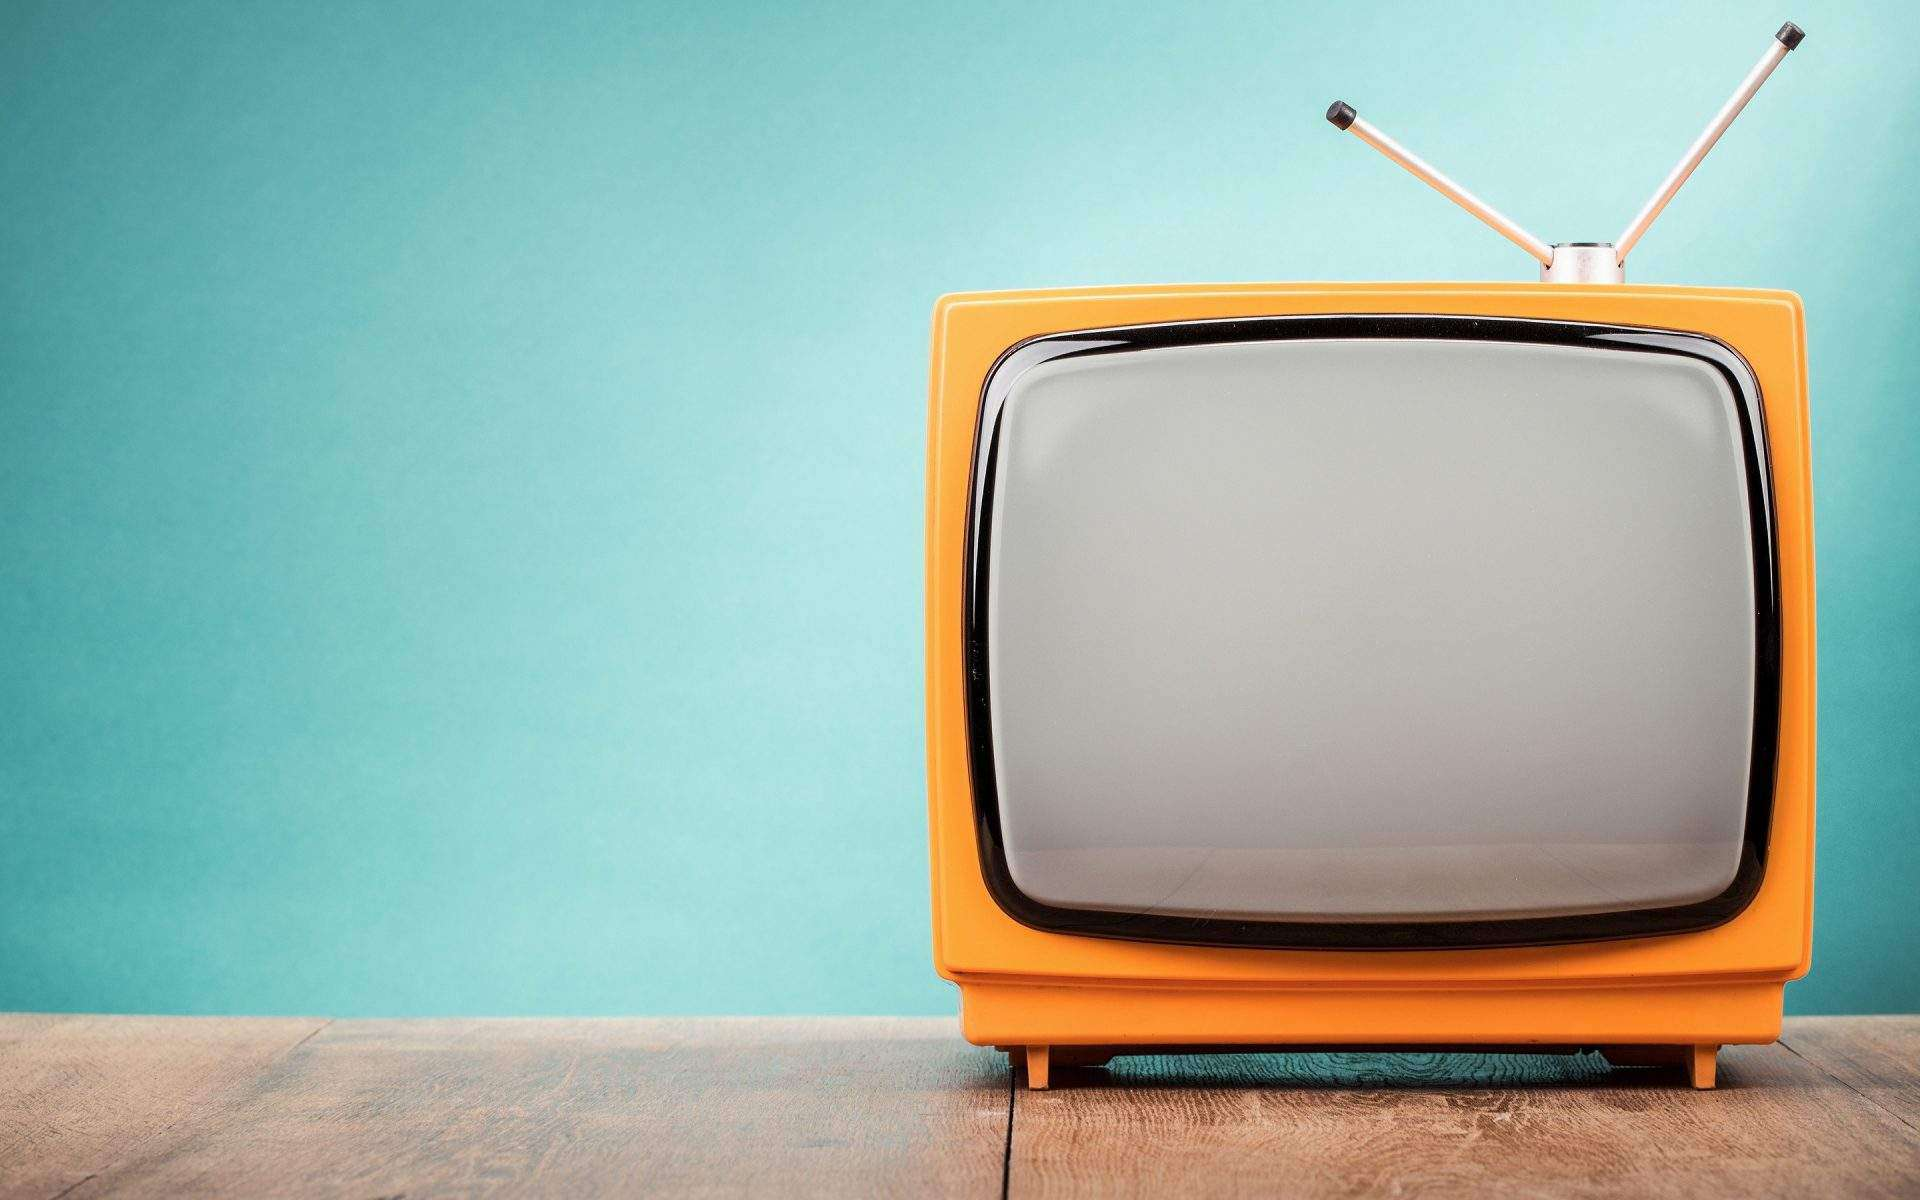 Best TV Shows To Watch This Summer